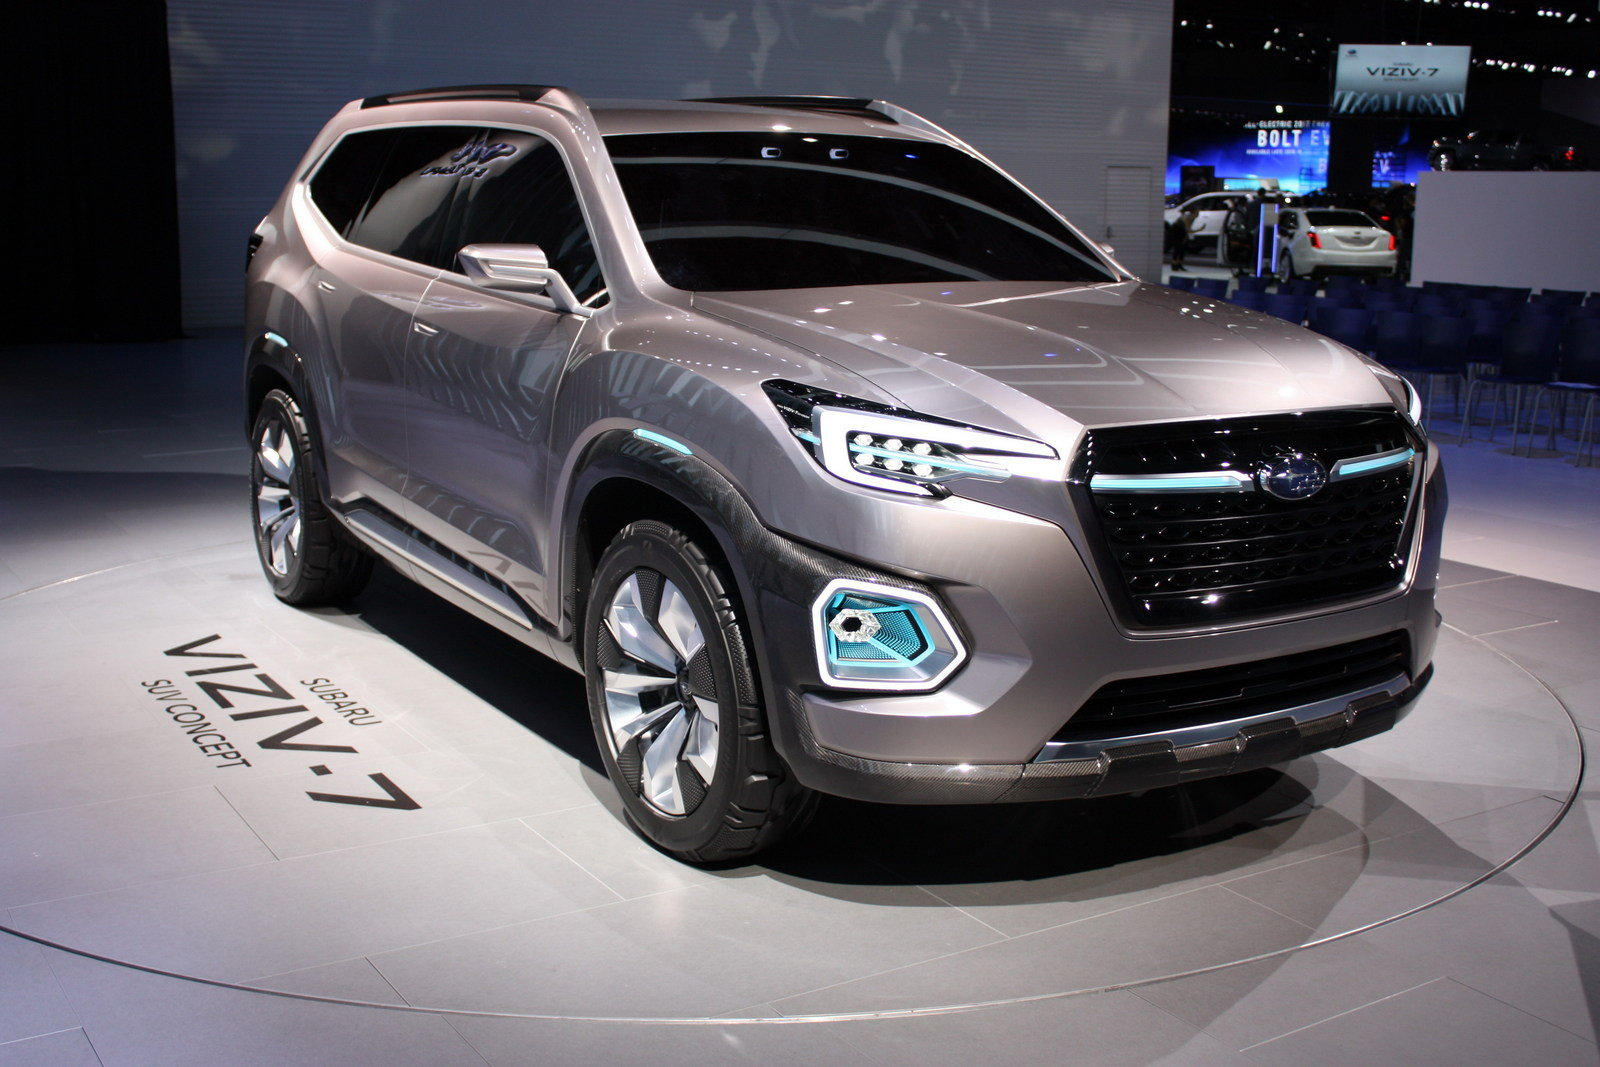 2017 subaru viziv 7 suv concept picture 696319 car review top speed. Black Bedroom Furniture Sets. Home Design Ideas